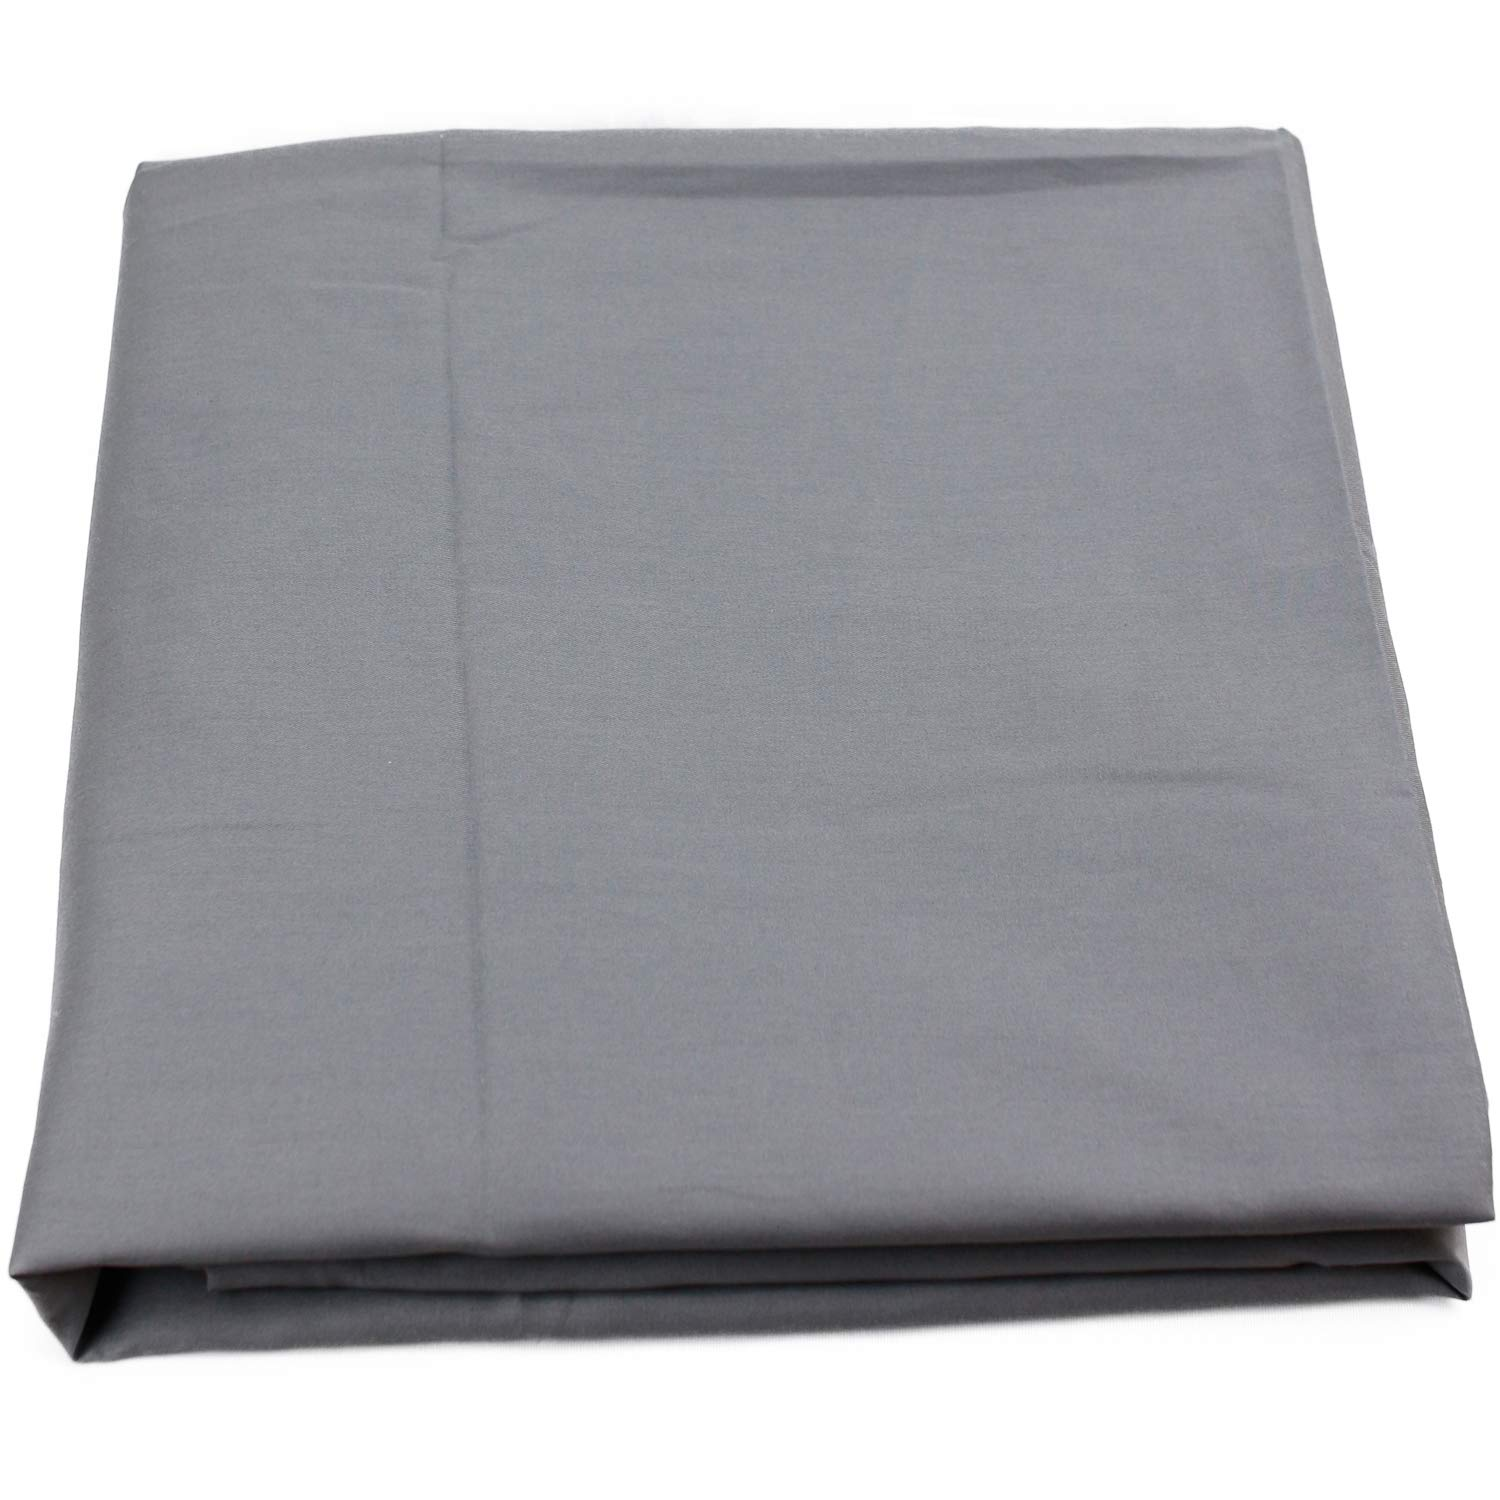 Rossy/&Nancy/'s Store 60x80, Minky Removable Duvet Cover - Dark Grey Rossy/&Nancy Removable Minky Dot Duvet Cover for Weighted Bedding Blanket